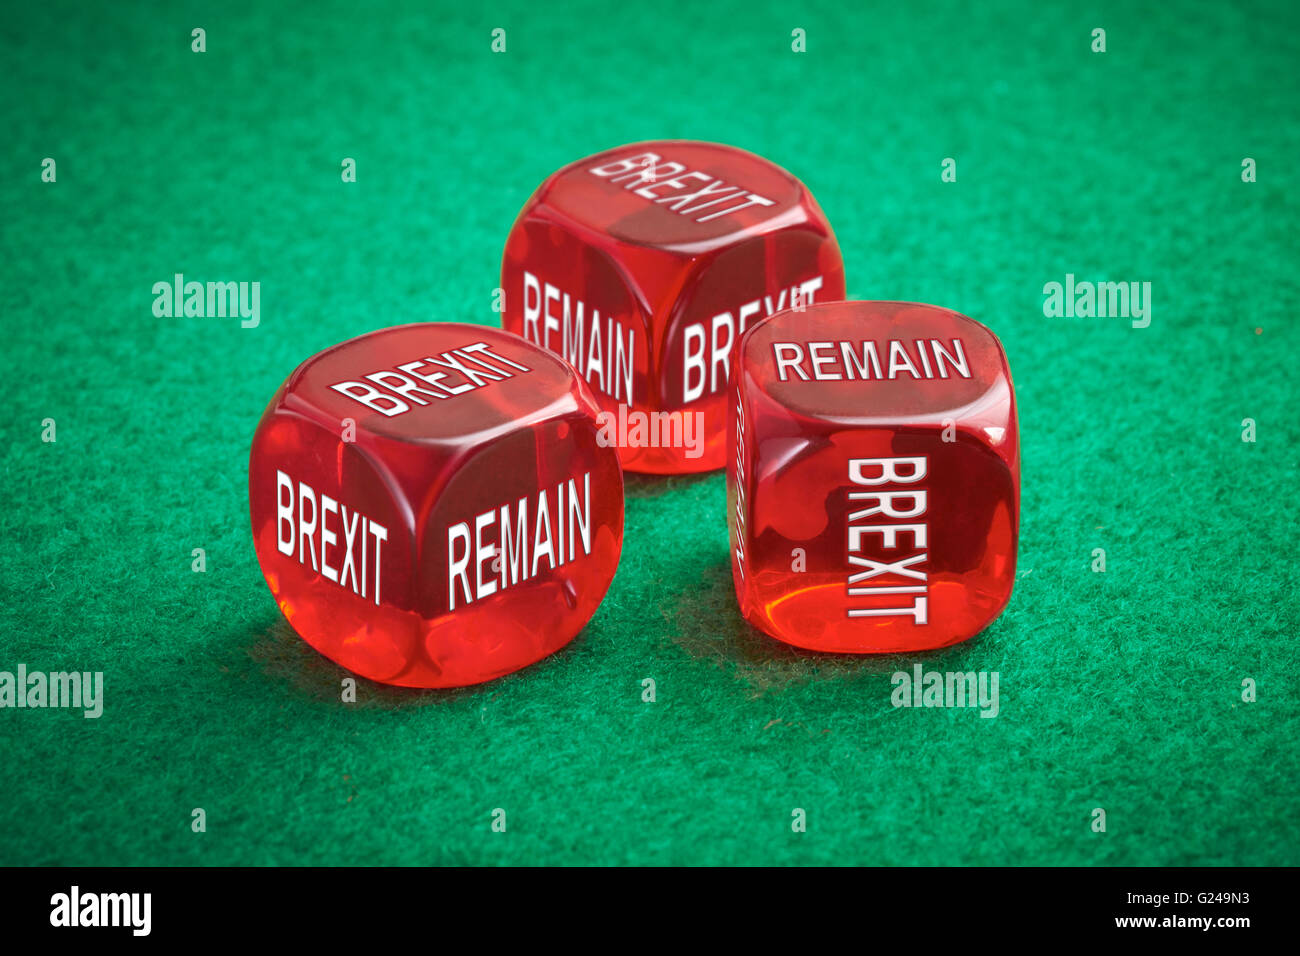 Brexit or remain dice concept. United Kingdom European Elections voting on leaving the European Union. Independence - Stock Image